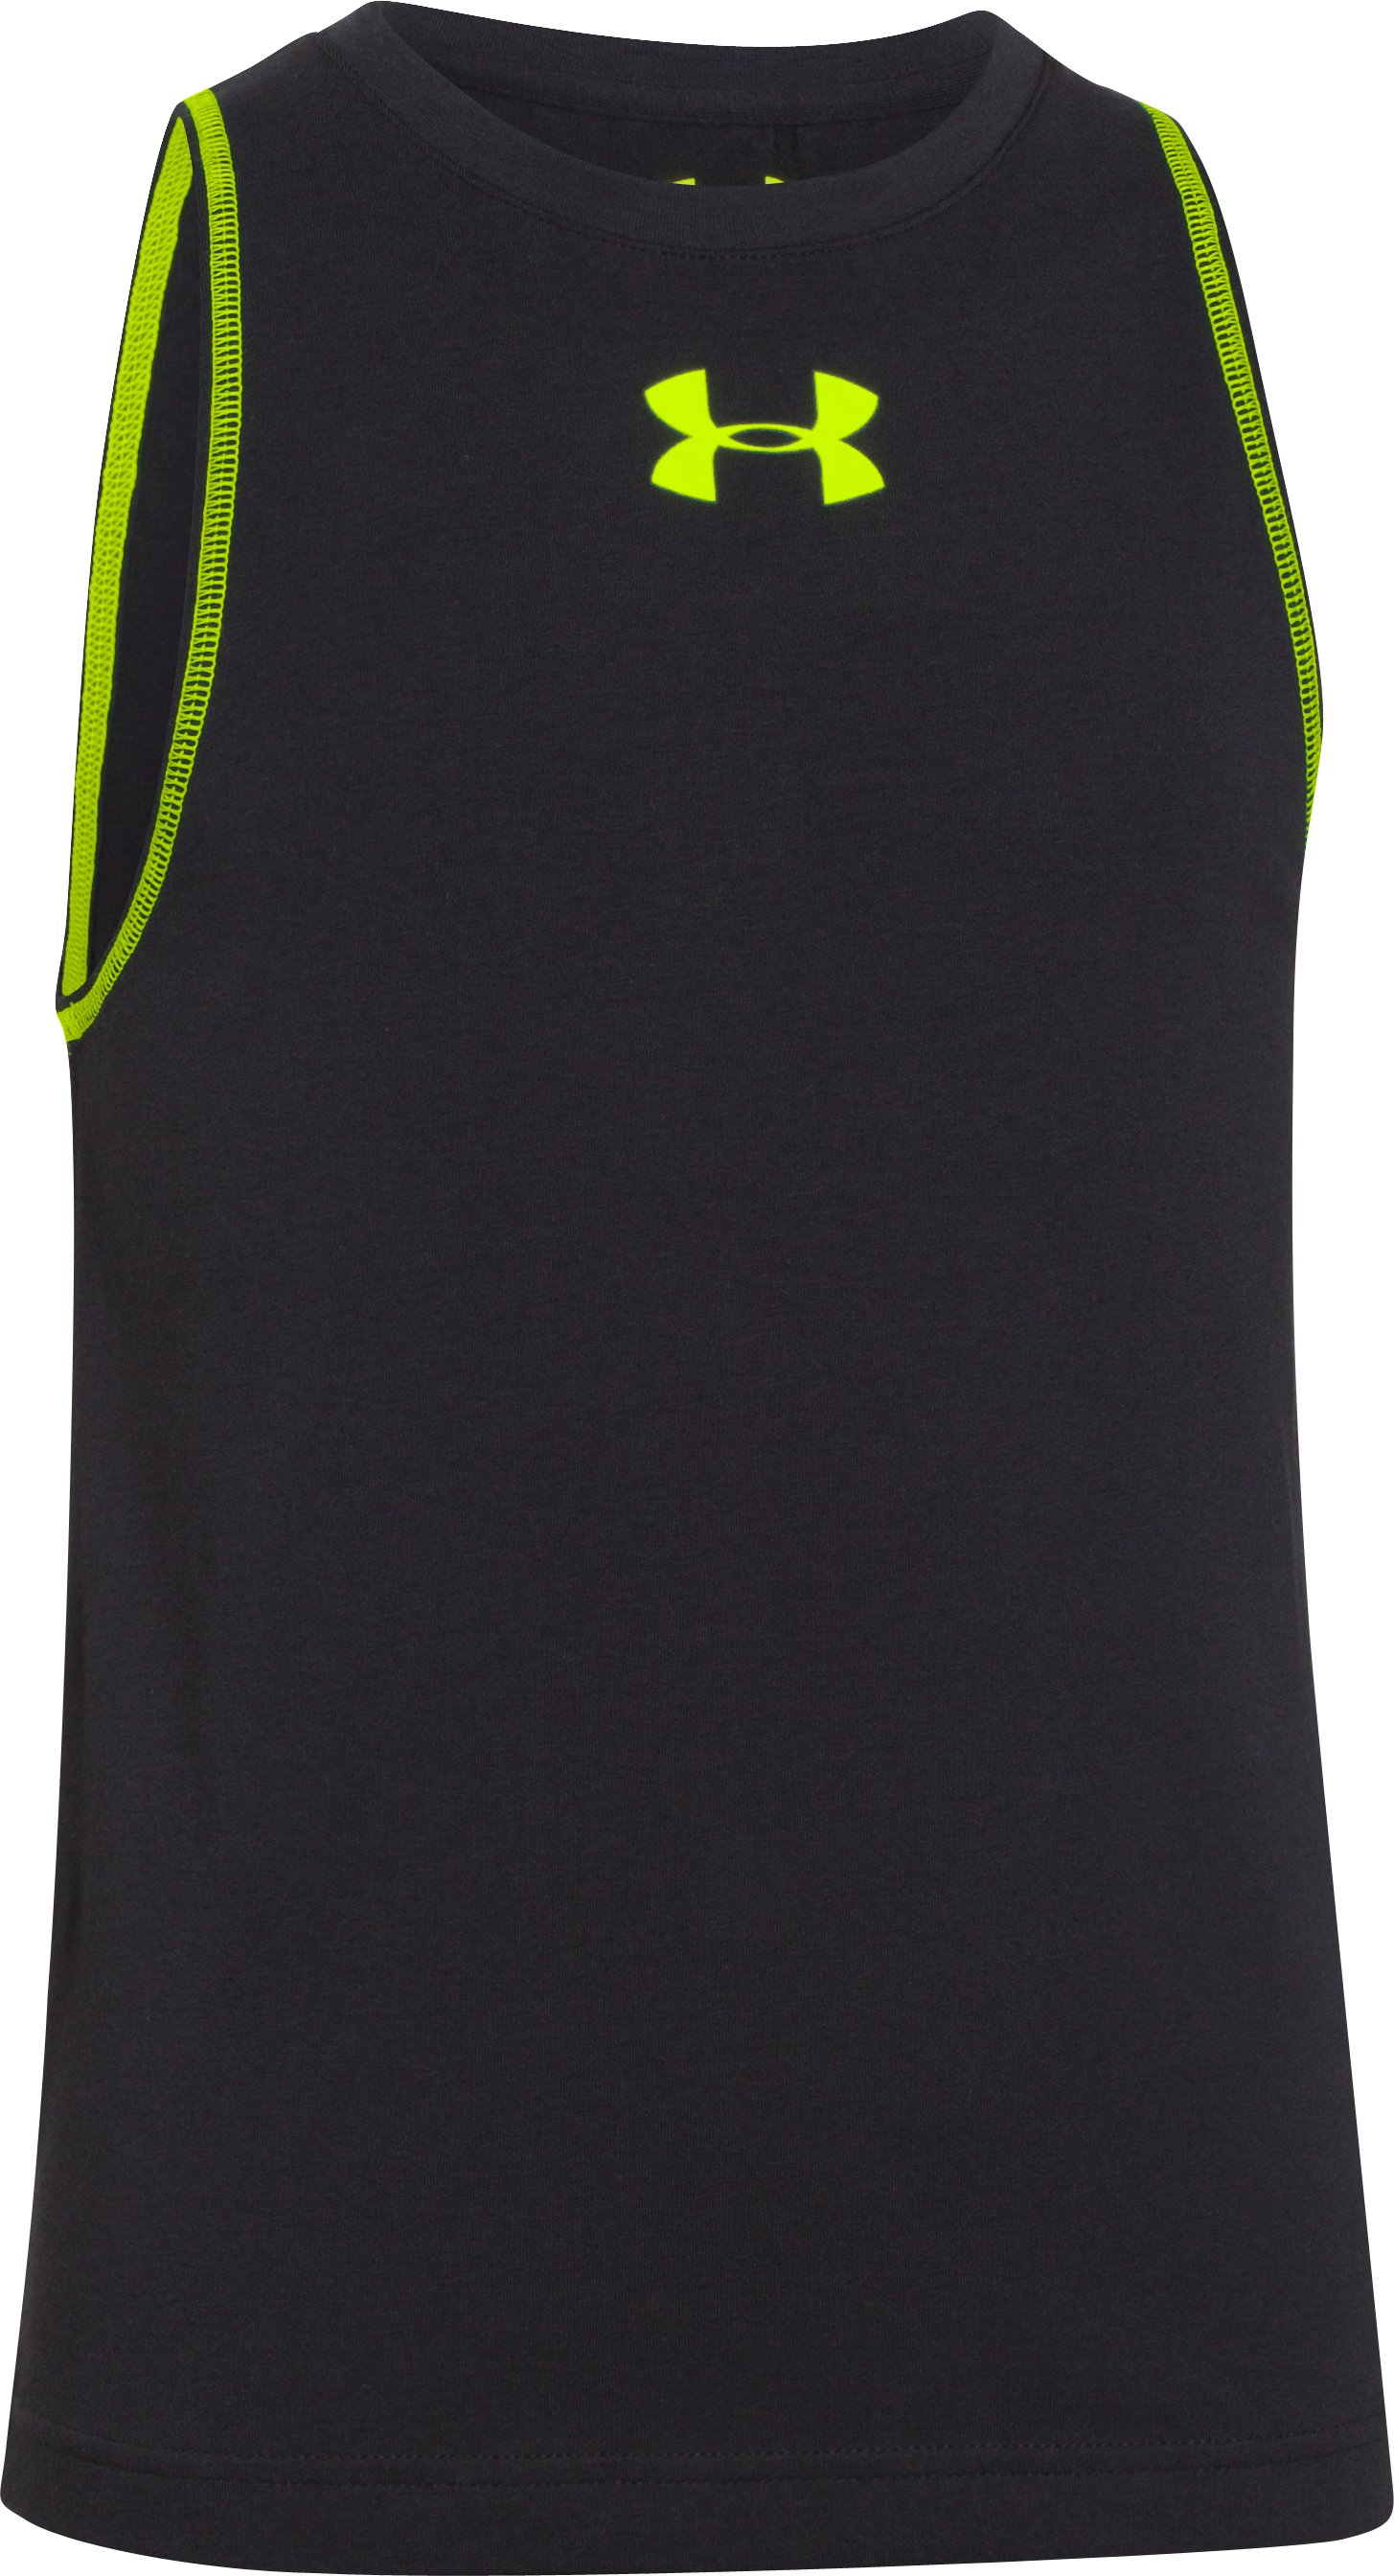 Boys' Charged Cotton® Tank, Black